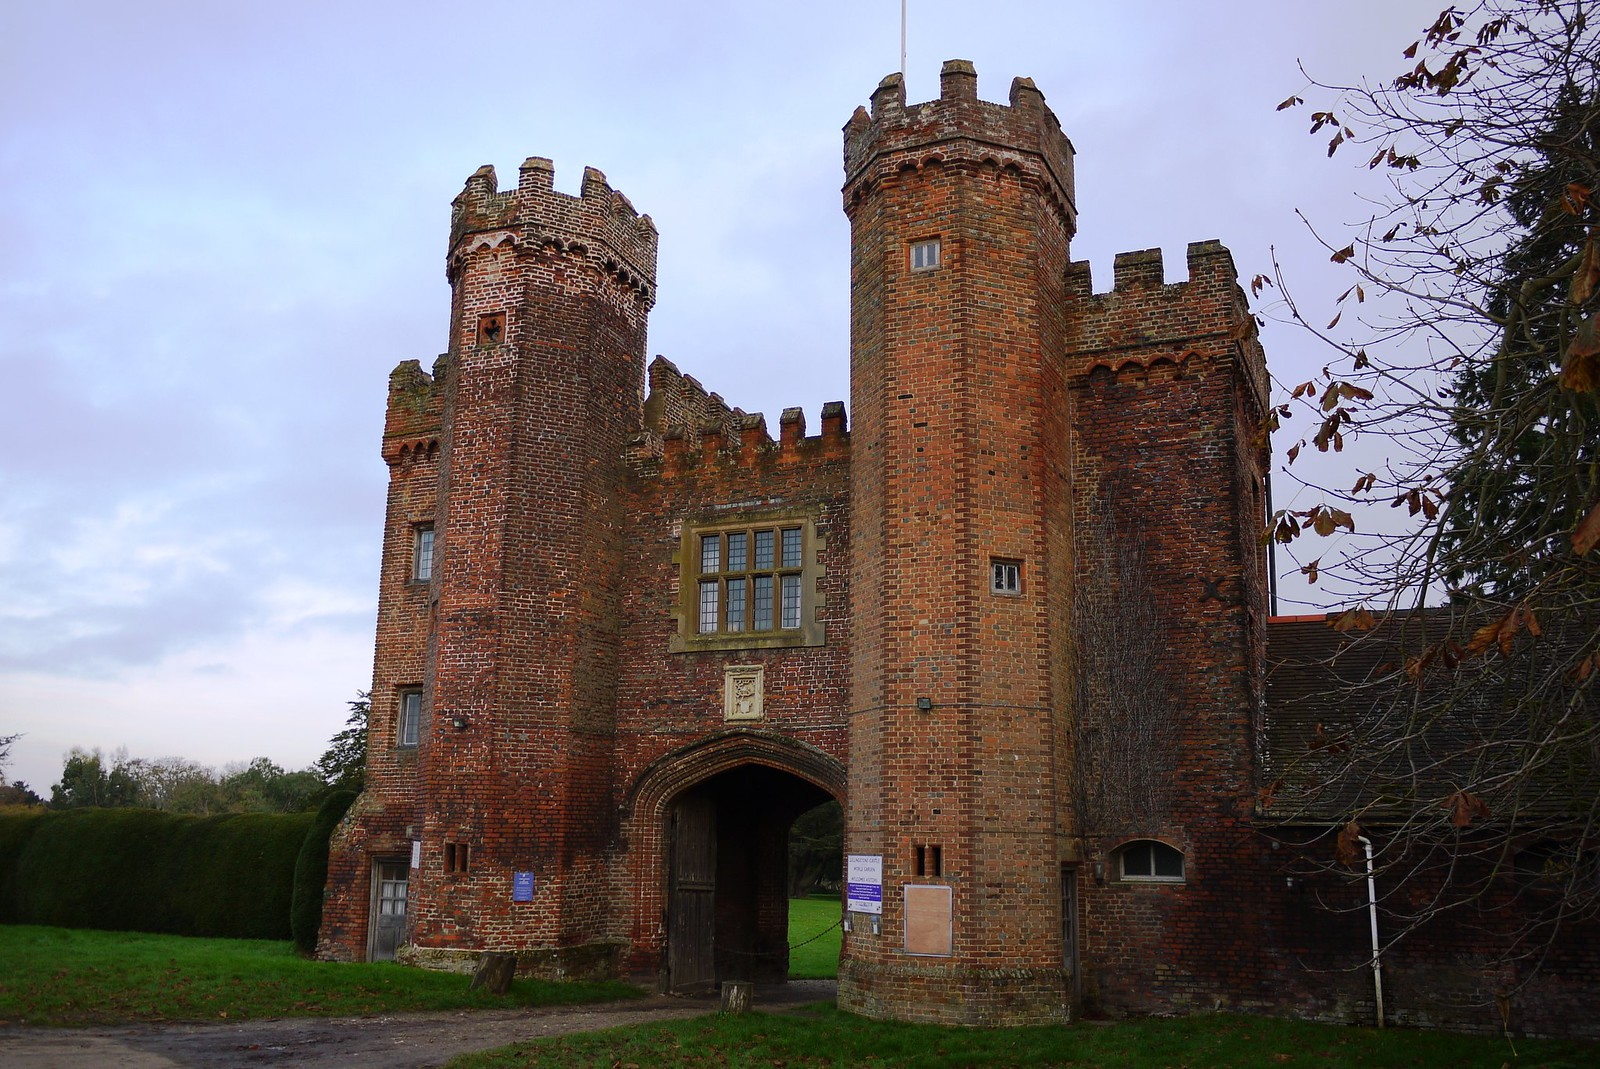 Lullingstone Castle Otford to Eynsford